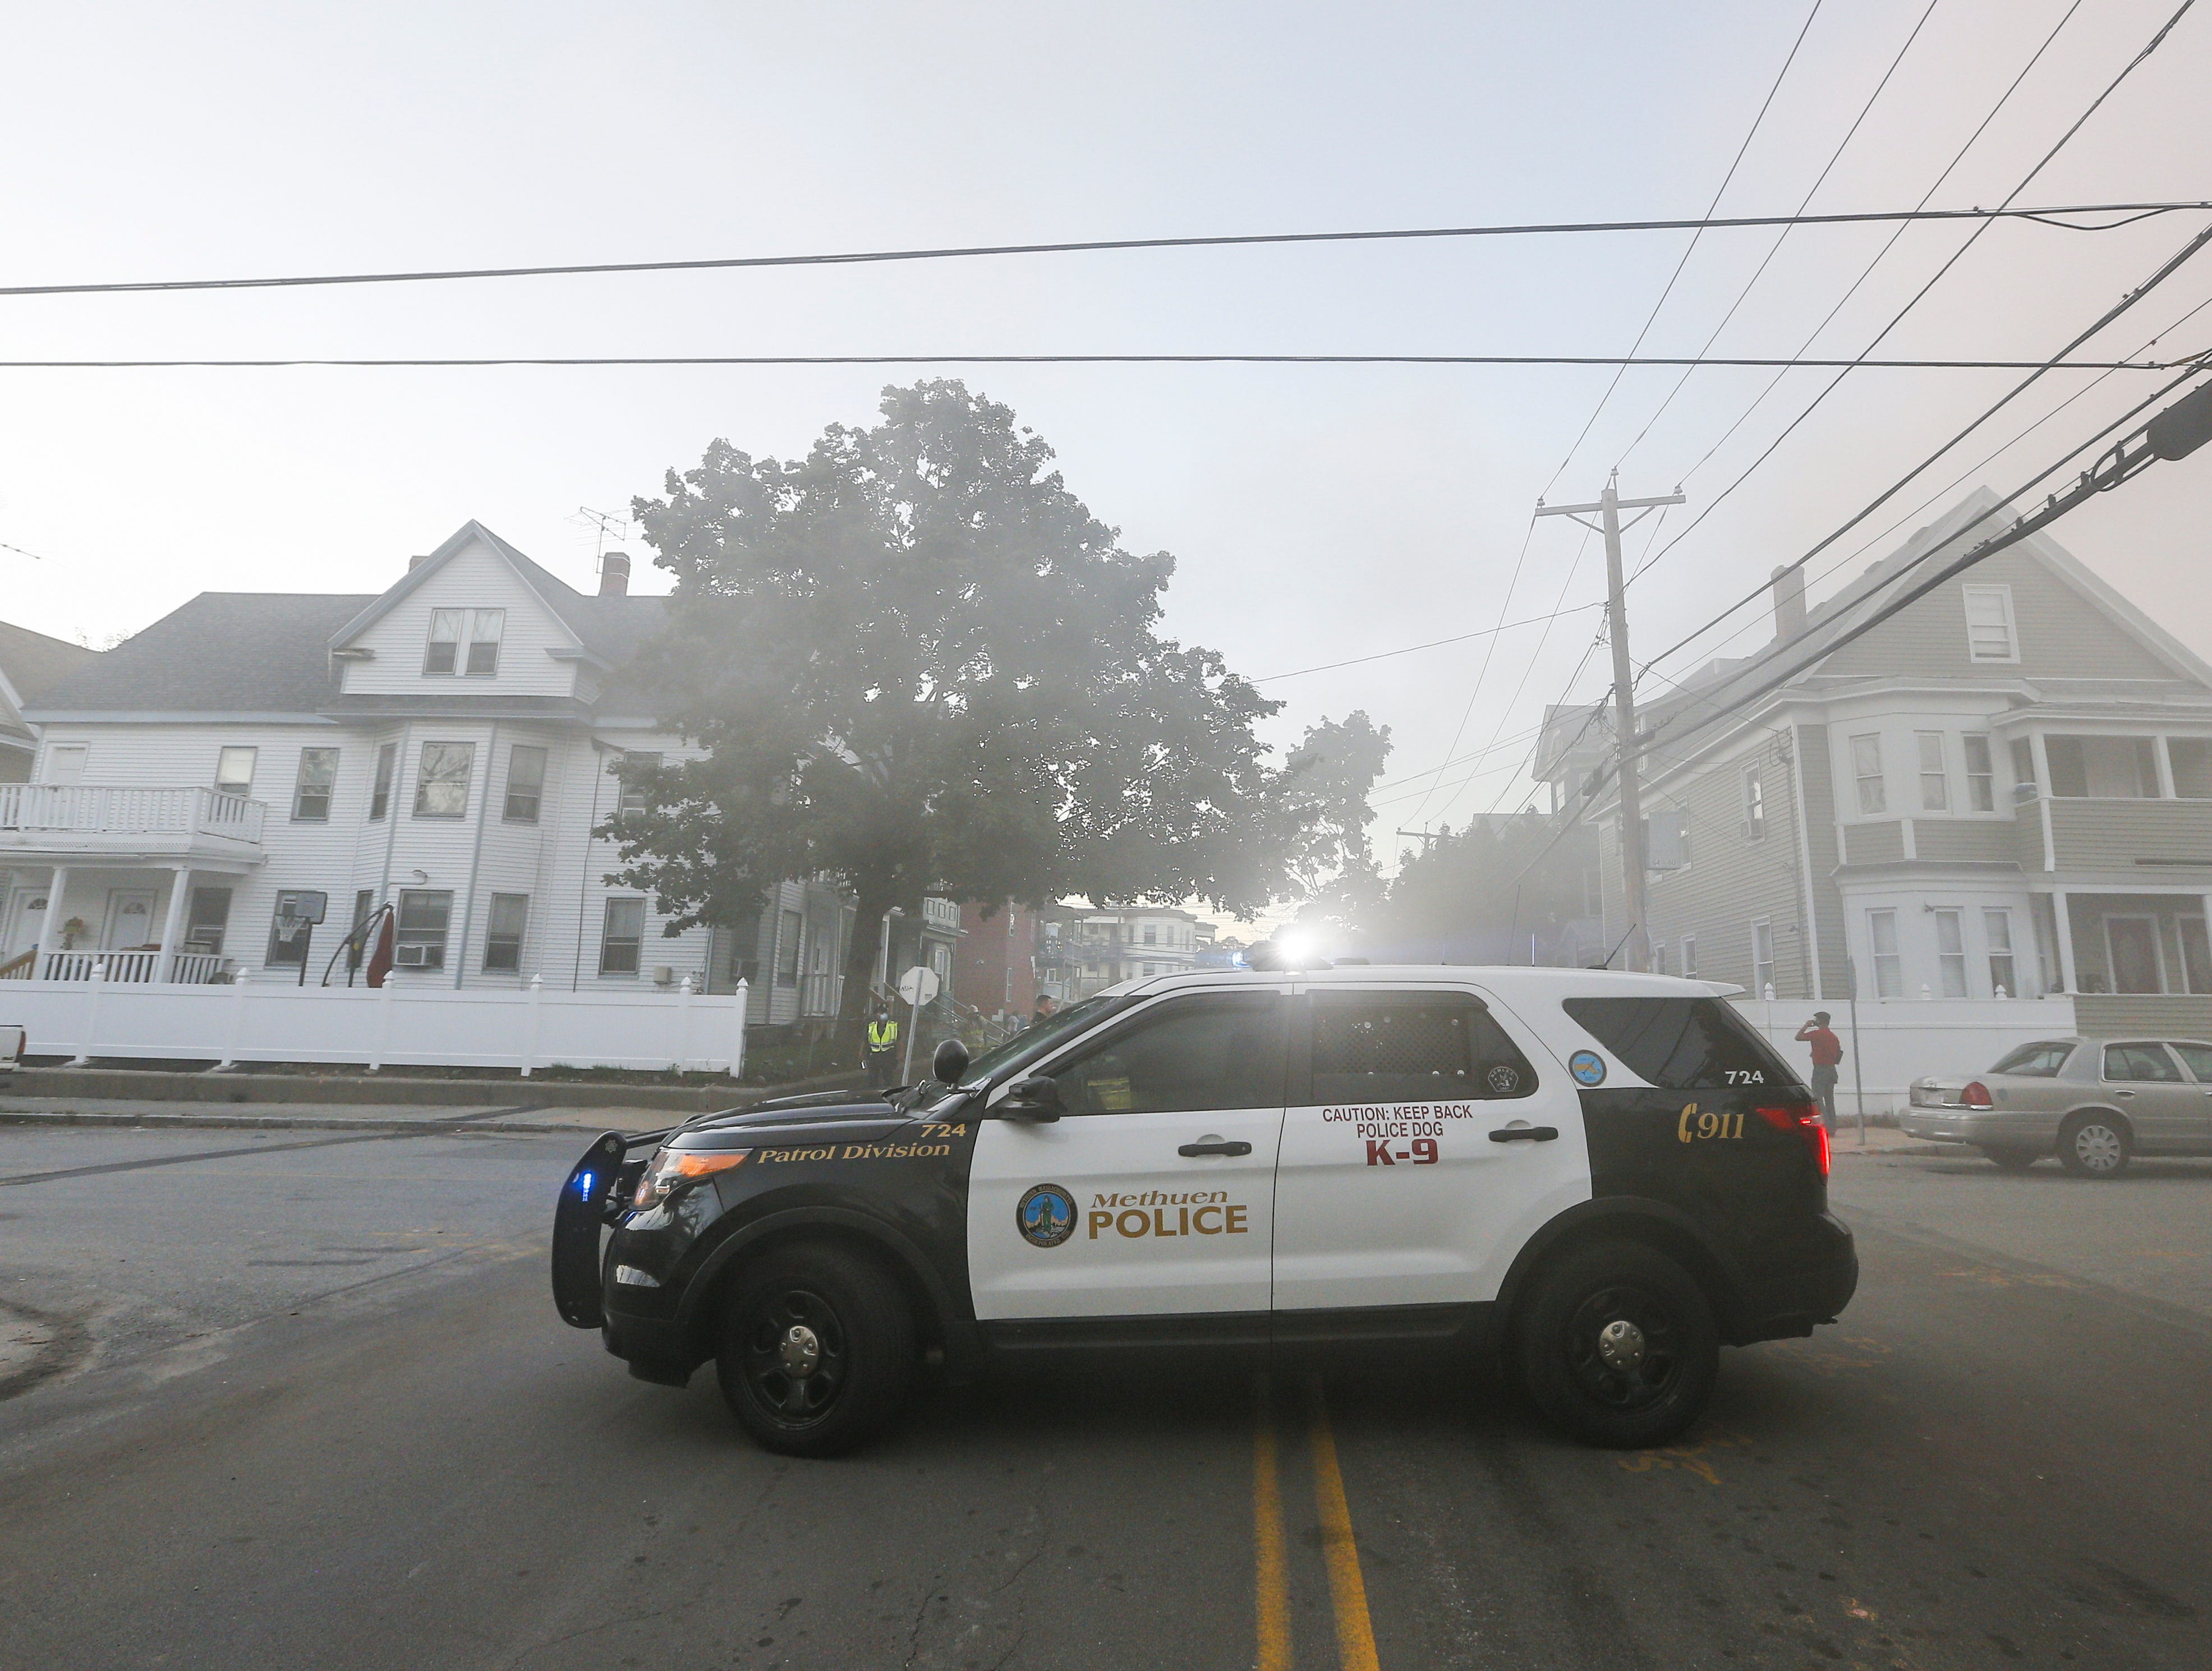 A police car blocks a road in a smoke filled neighborhood as firefighters battle house fires in Lawrence, Mass., Sept. 13, 2018.